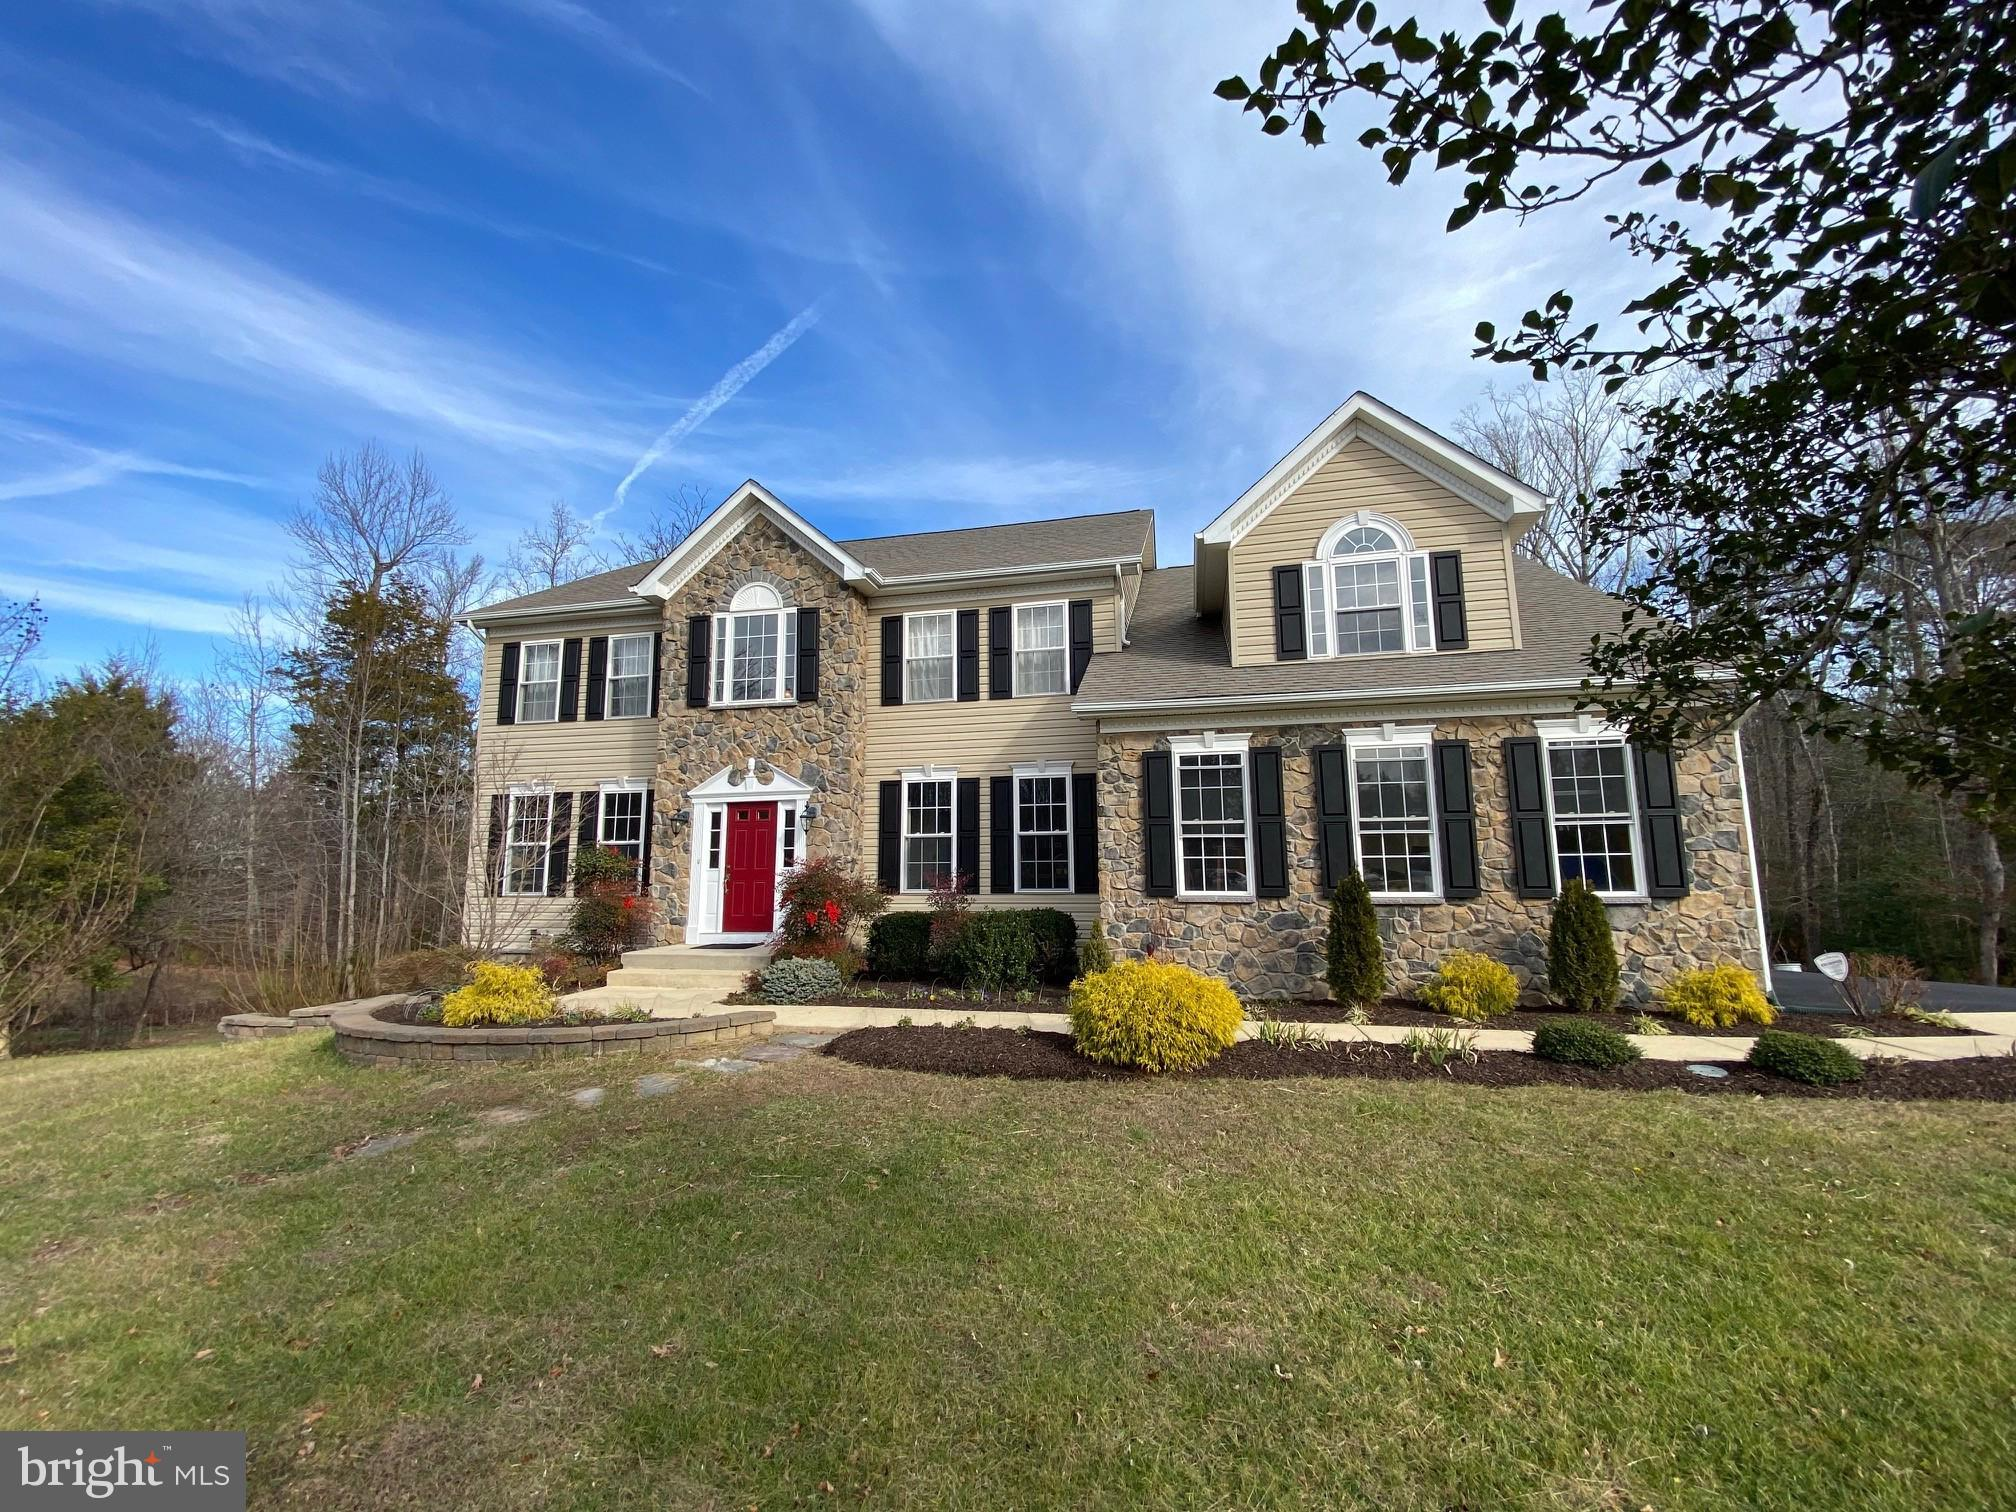 23368 PEMBROOK DRIVE, HOLLYWOOD, MD 20636